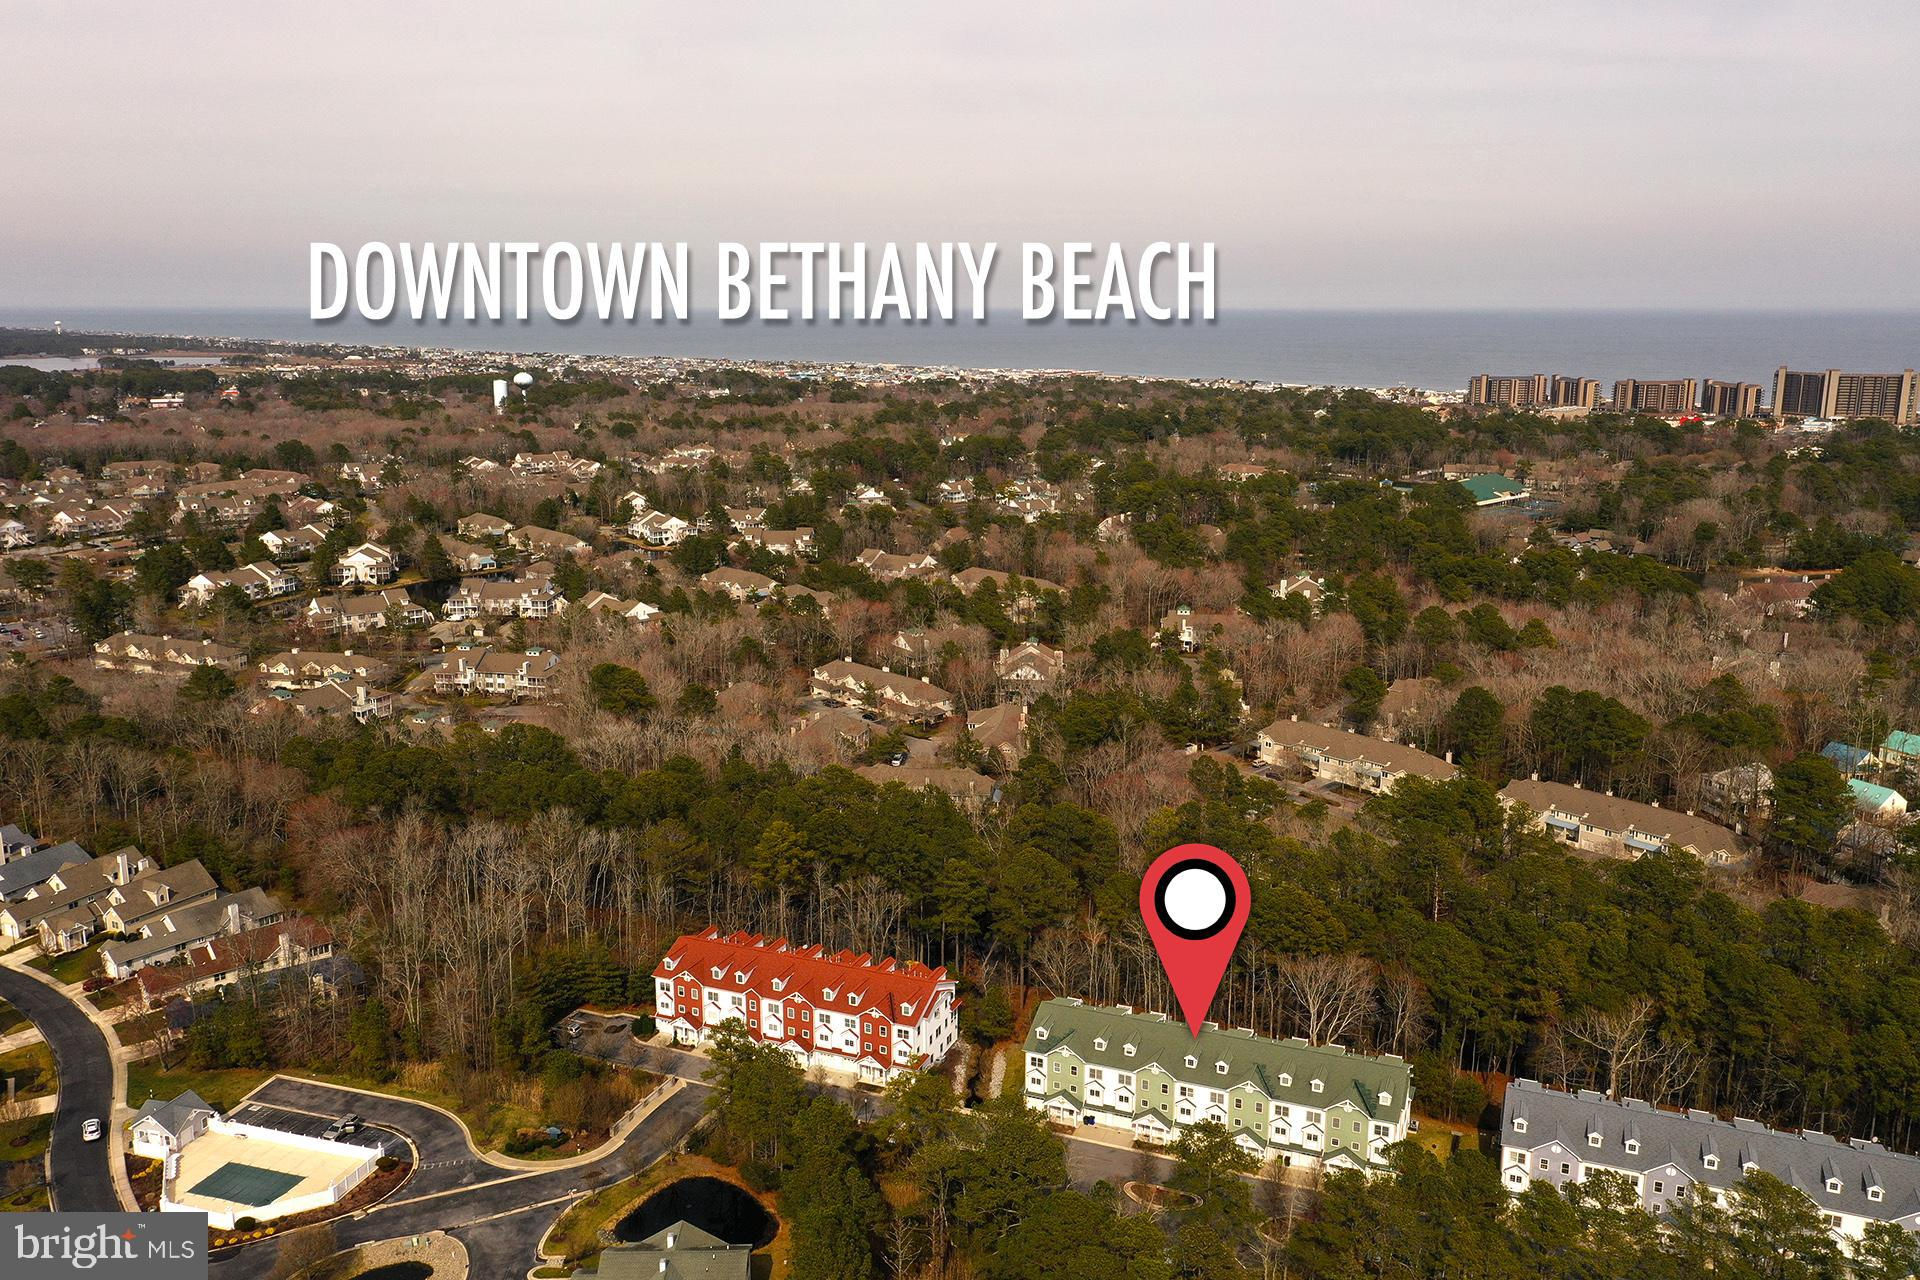 """Luxury townhome, in excellent condition,  located in the tranquil, wooded setting along the Assawoman Canal in Canal Woods, a subdivision of the Waterside community, just a short bike ride to the Bethany Beach and Boardwalk.  (approximately 1.9 miles)  This community is directly across the canal from Sea Colony West.  Town home is loaded with upgrades; spacious, open floor-plan, private elevator, hardwood floors, ceramic tile and marble flooring to name a few.  Living area with gas fireplace and custom built-ins, built-in speaker system and intercoms throughout the home.  Upgraded kitchen with 42"""" cabinets, granite countertops, double oven, propane cooktop and island with breakfast bar, and dining area.  Large Owner's ensuite with whirlpool tub, gas fireplace, and large walk-in closet.  3 additional ensuites to allow for plenty of family or guests.  Garage offers space for additional storage for Kayaks, fishing, other beach gear or car.   Excellent rental income!  This won't last long!"""